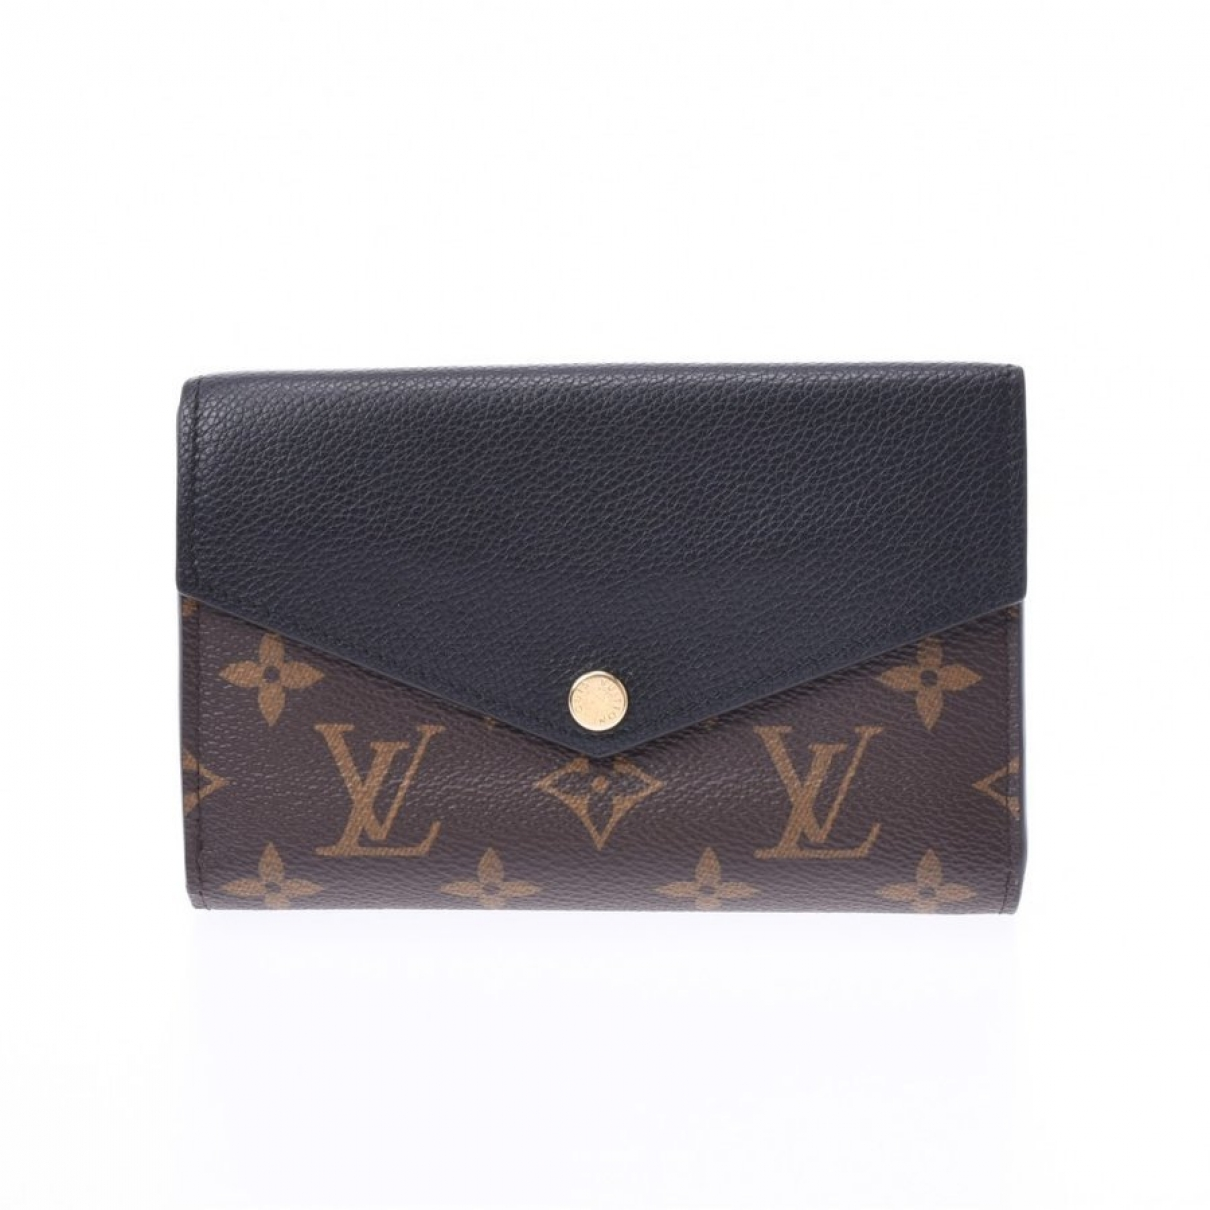 Cartera Pallas de Lona Louis Vuitton